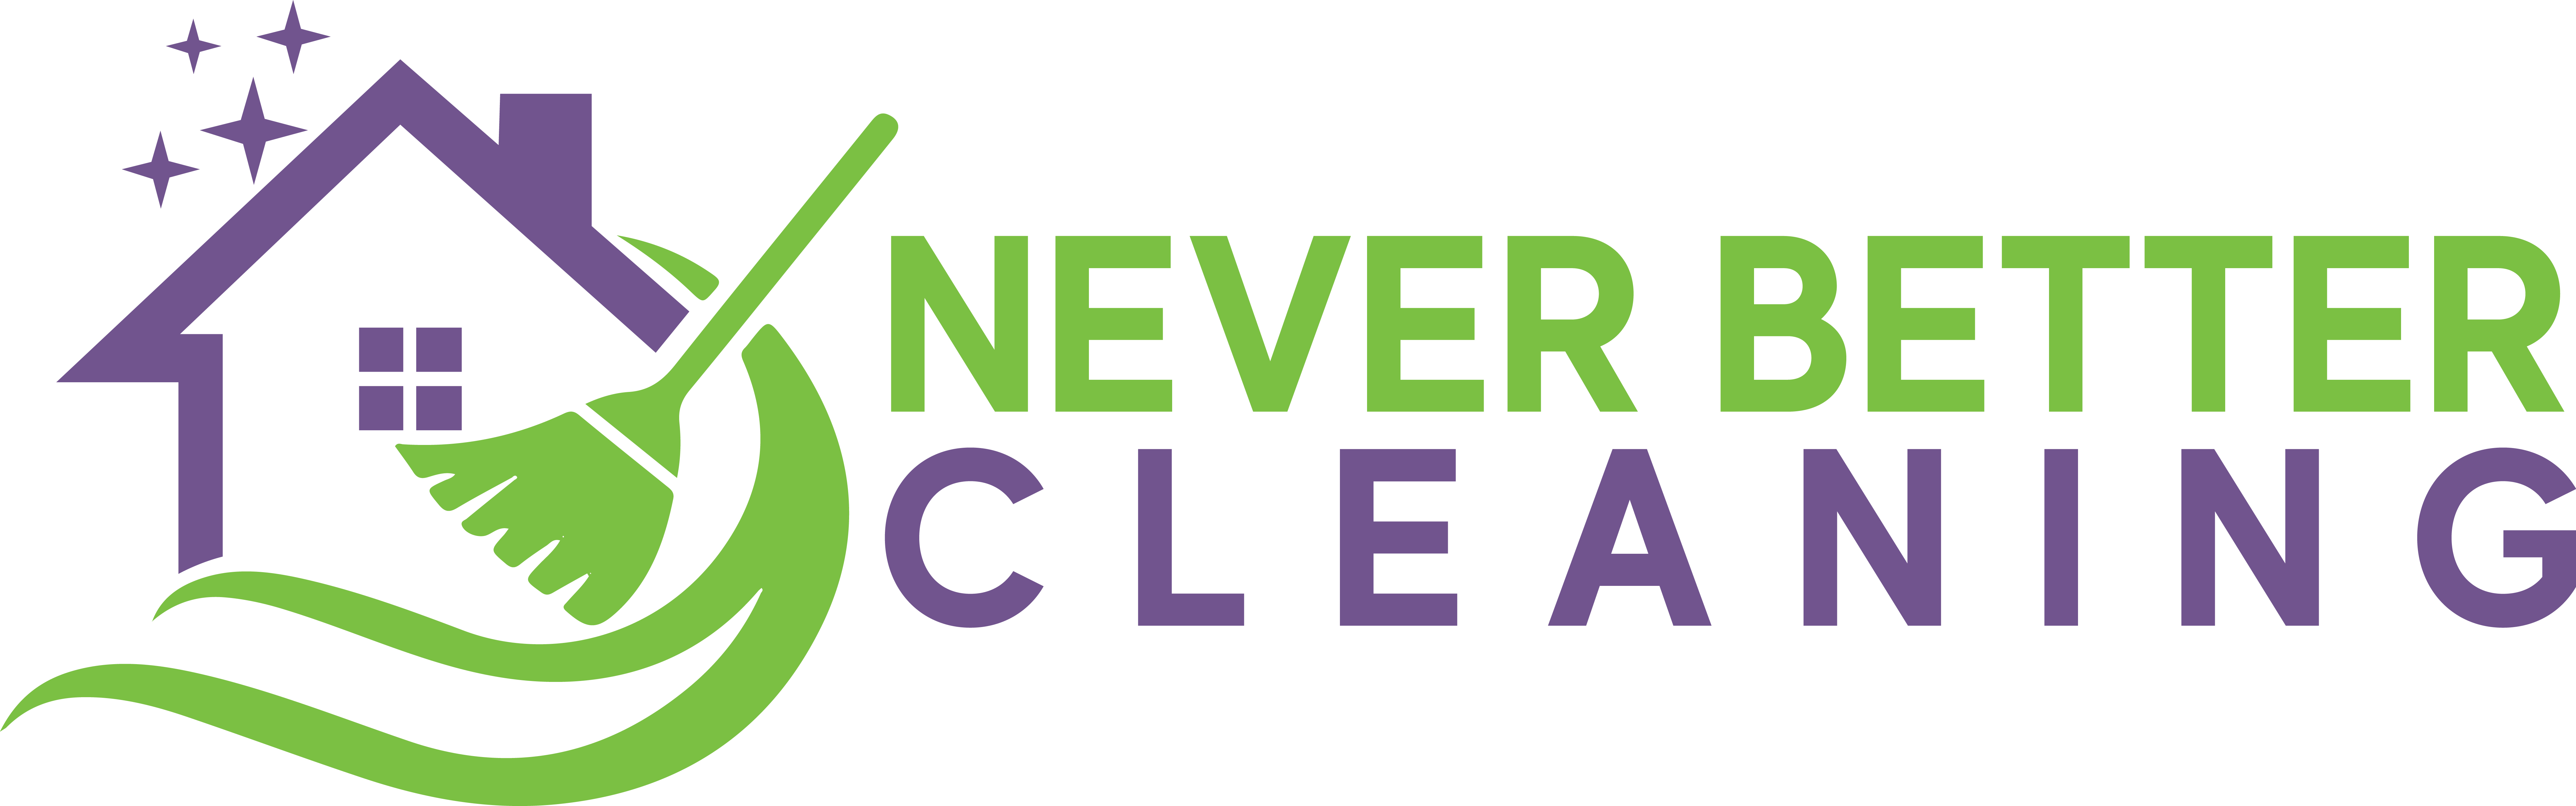 Never Better Cleaning image